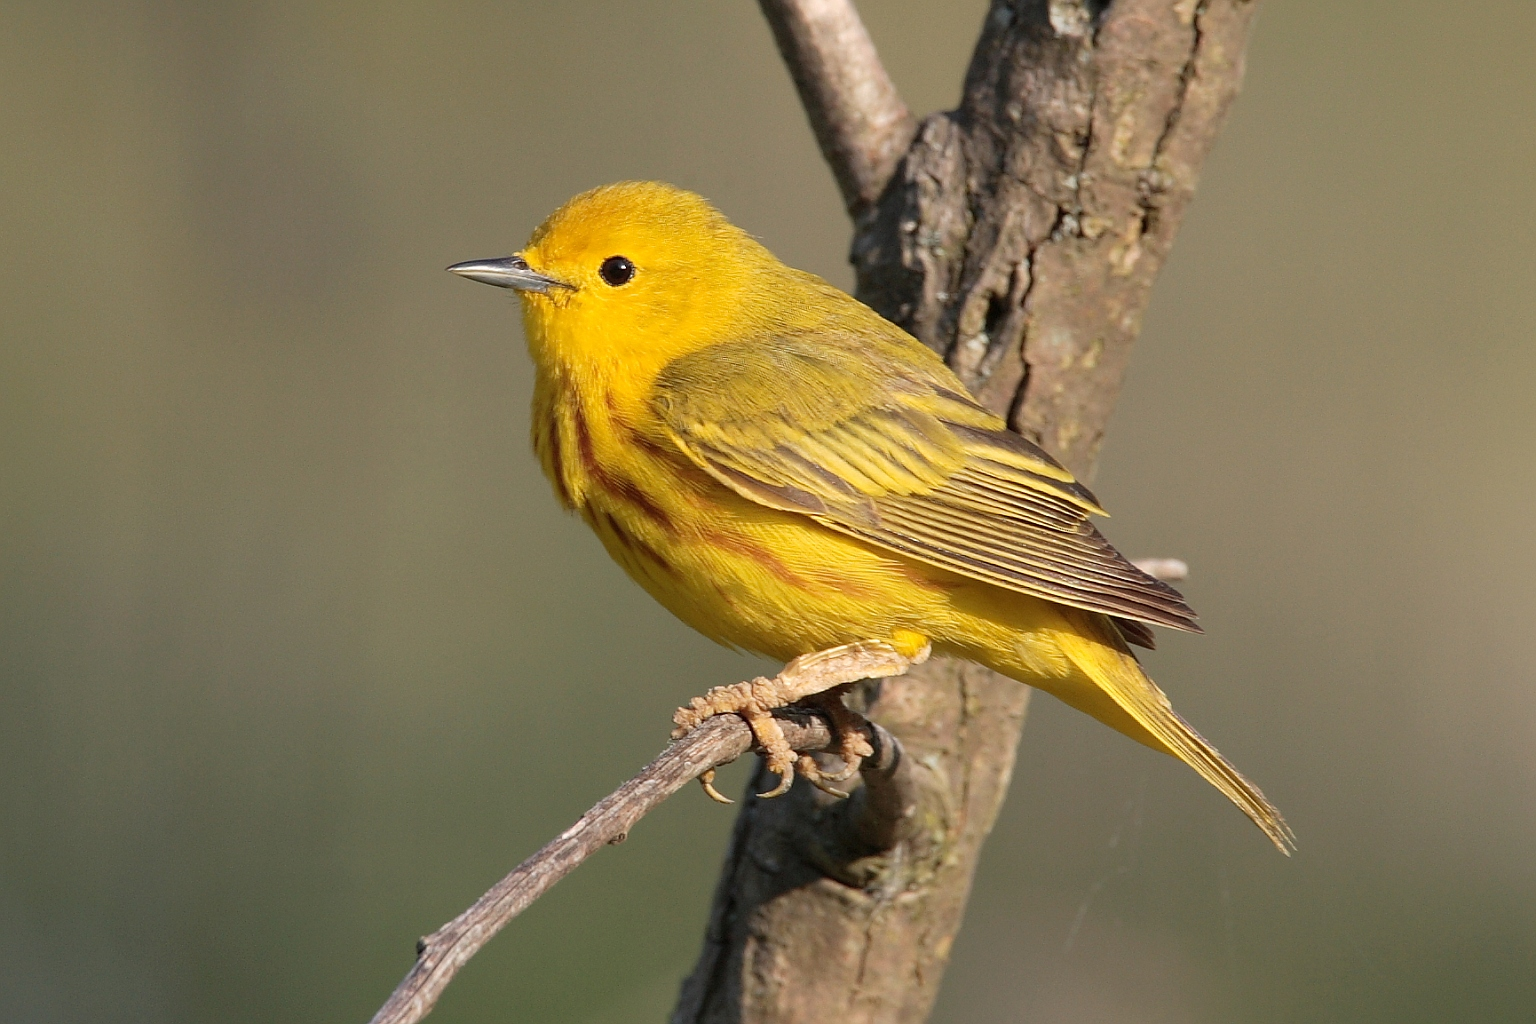 Dendroica-aestiva-001 yellow warbler.jpg